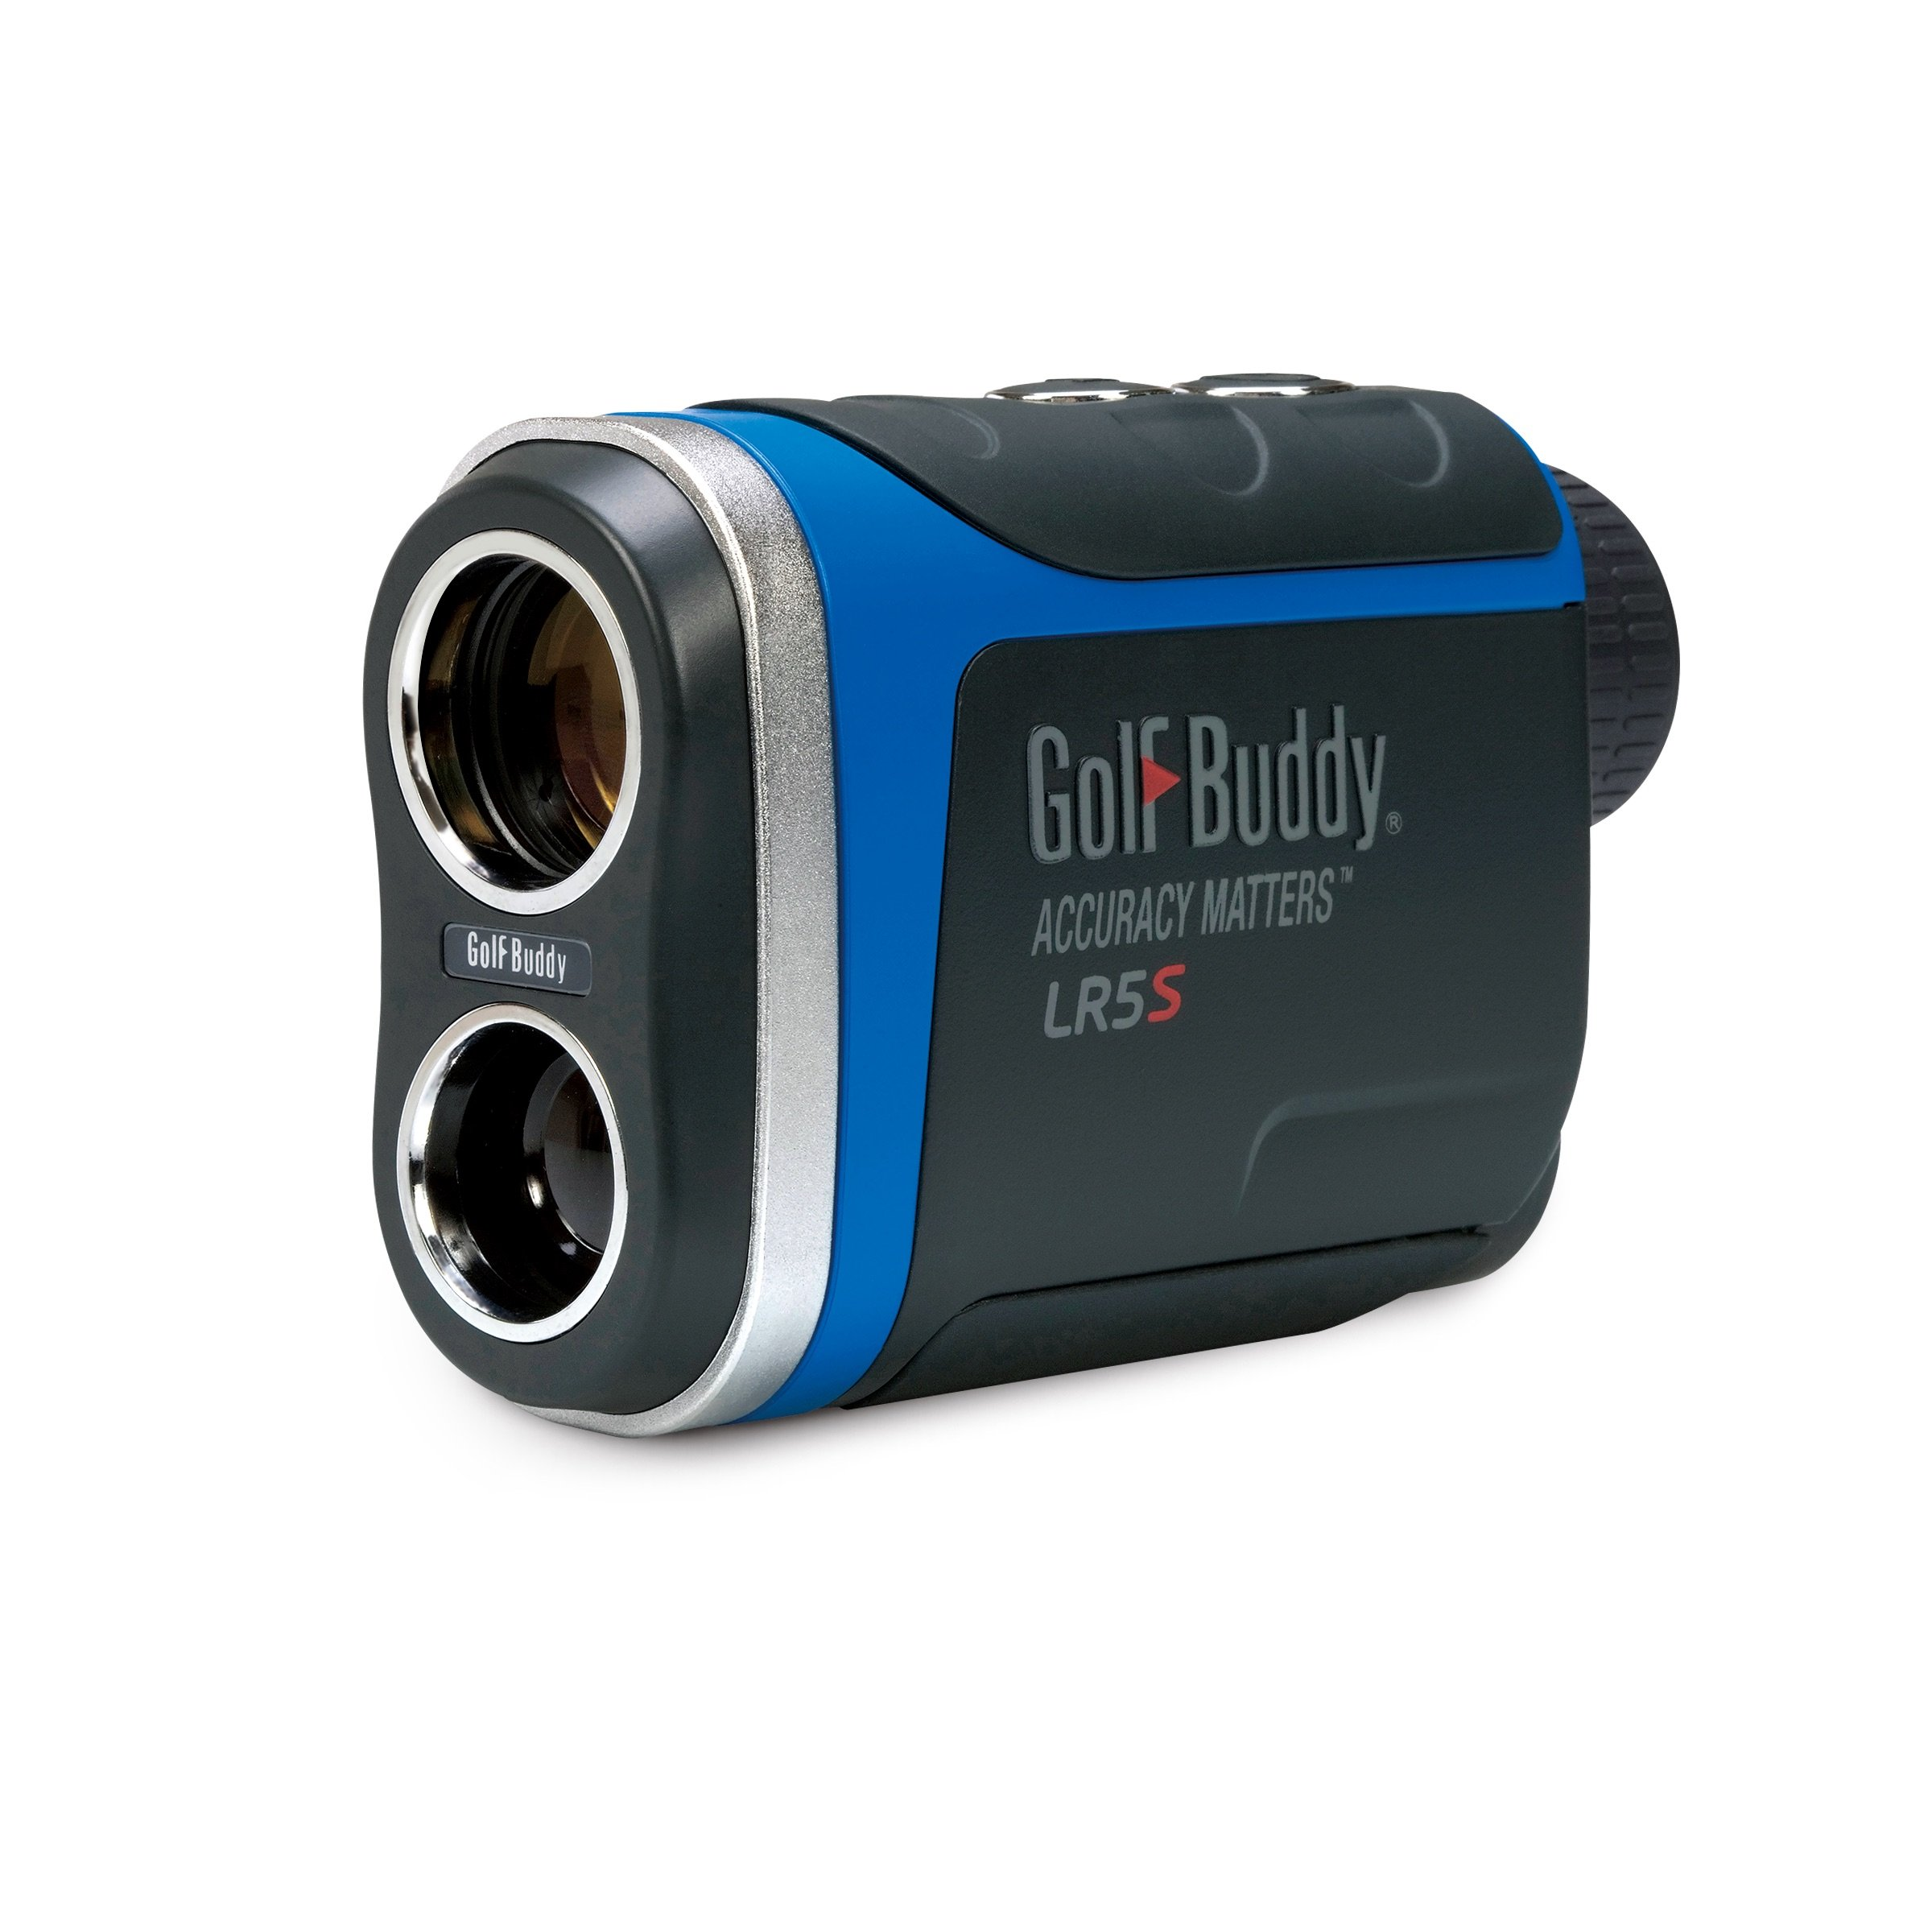 GolfBuddy LR5S Golf Laser Rangefinder with Slope, Dark Gray/Blue